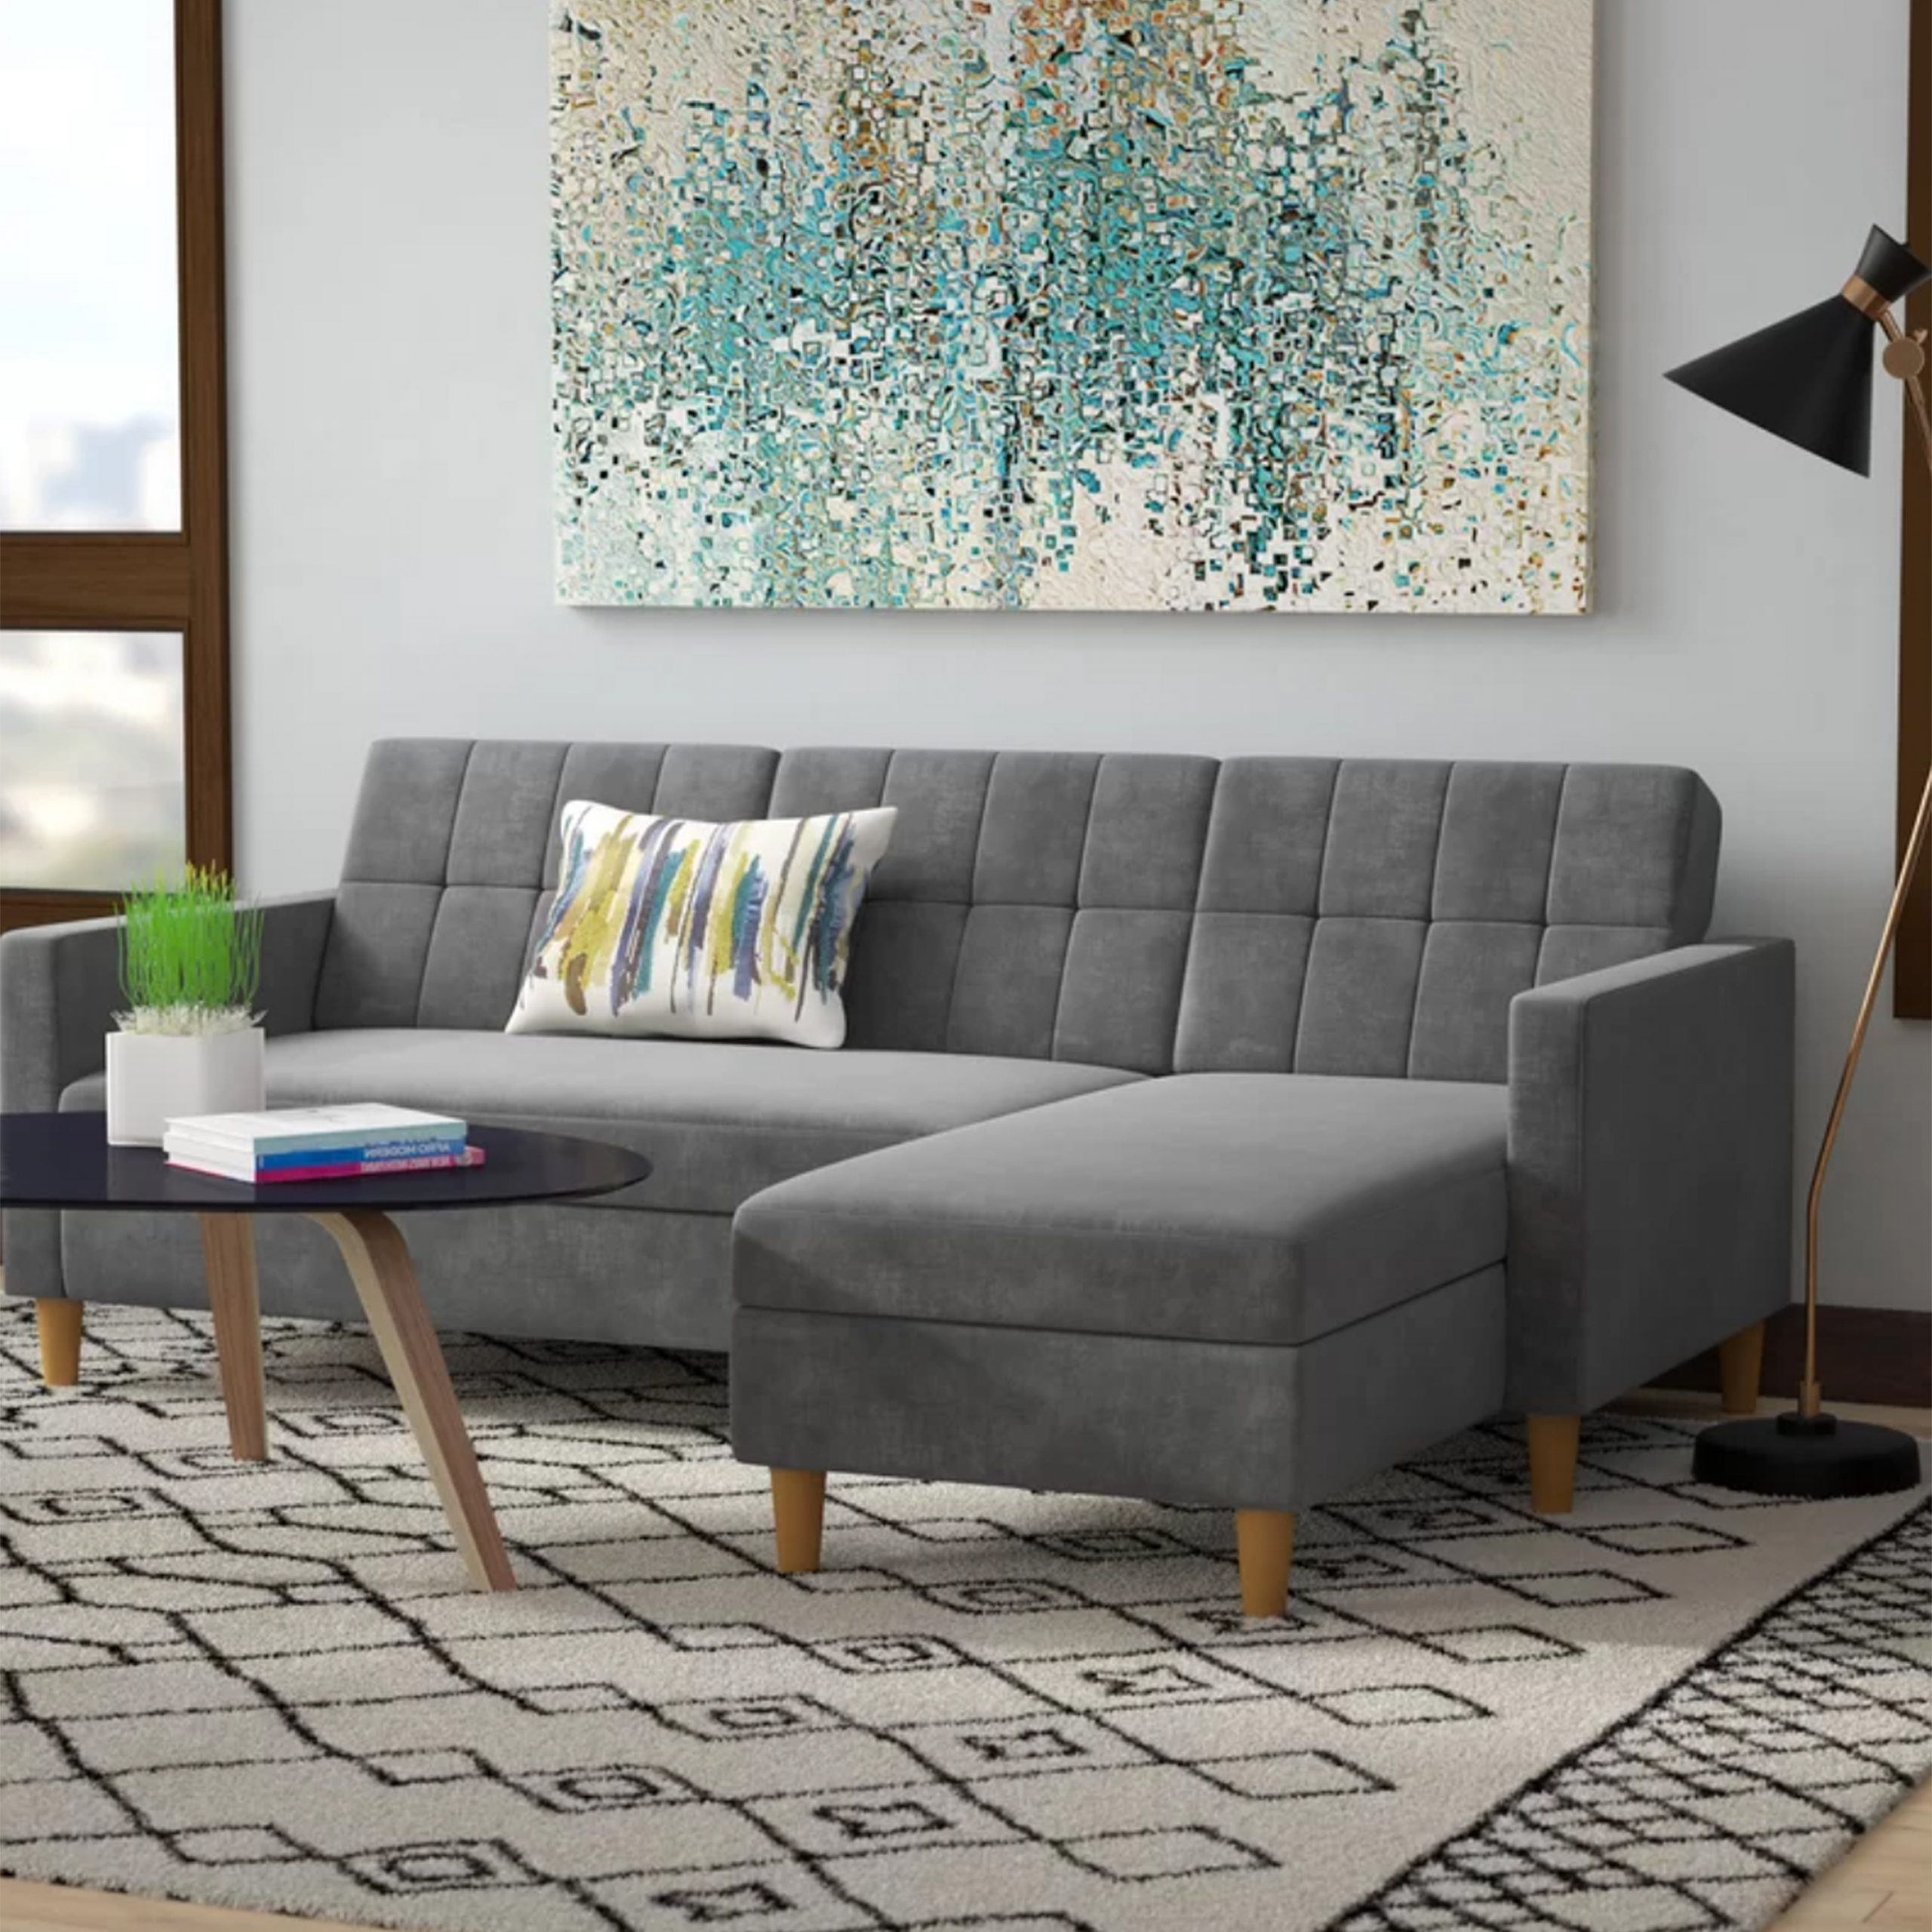 [%surprise! 67% Off Astrid Wicker Patio Sofa With Cushions Throughout Newest Astrid Wicker Patio Sofas With Cushions|astrid Wicker Patio Sofas With Cushions Regarding 2020 Surprise! 67% Off Astrid Wicker Patio Sofa With Cushions|latest Astrid Wicker Patio Sofas With Cushions Regarding Surprise! 67% Off Astrid Wicker Patio Sofa With Cushions|most Recent Surprise! 67% Off Astrid Wicker Patio Sofa With Cushions Within Astrid Wicker Patio Sofas With Cushions%] (View 16 of 25)